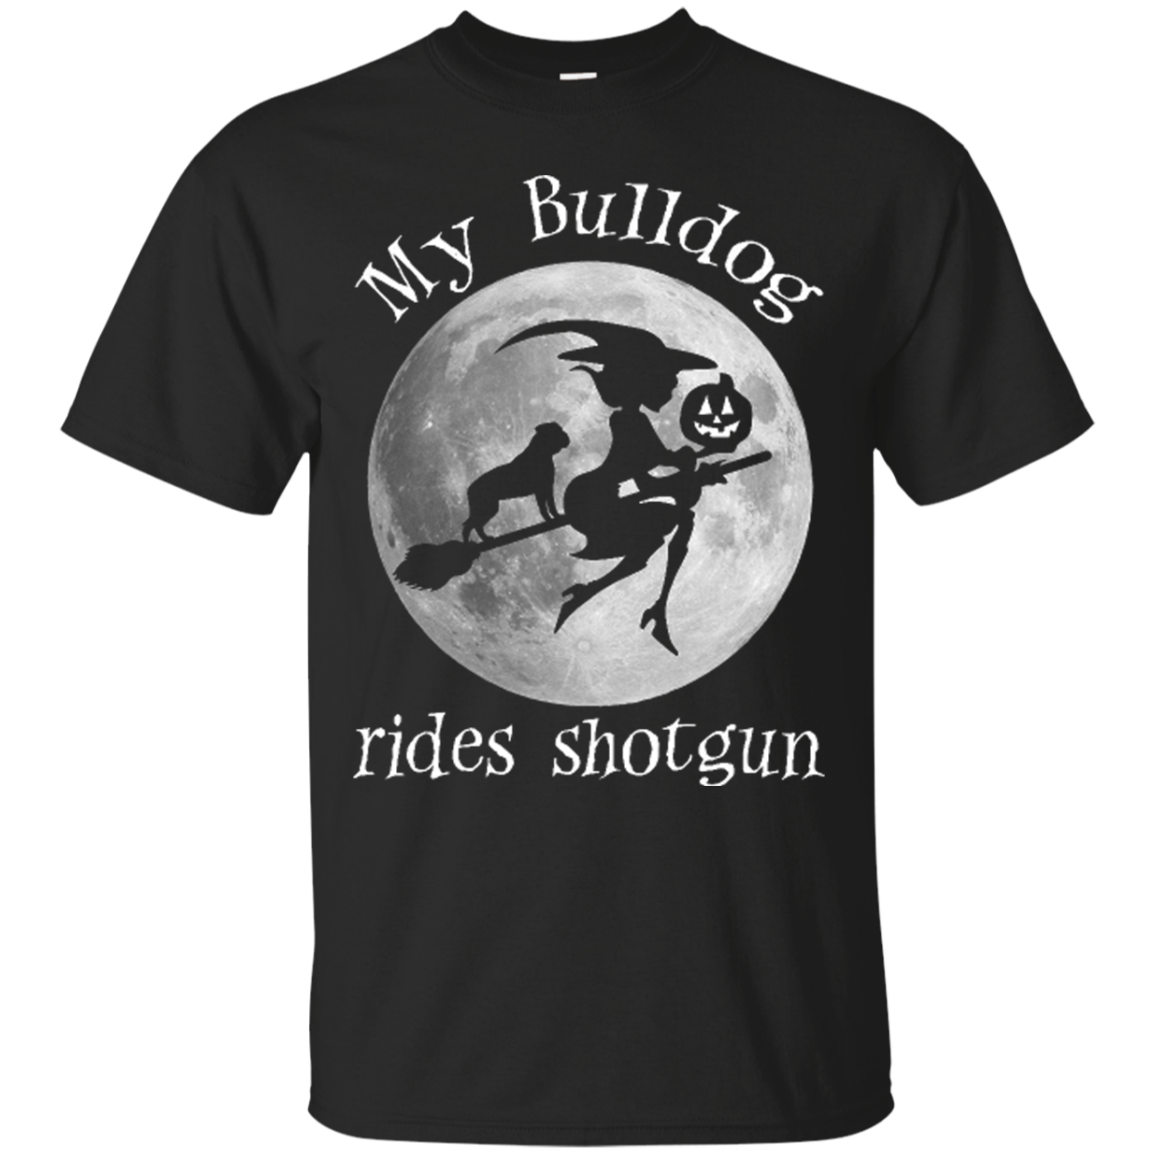 Bulldog Halloween Shirts My Bulldog Rides Shotgun